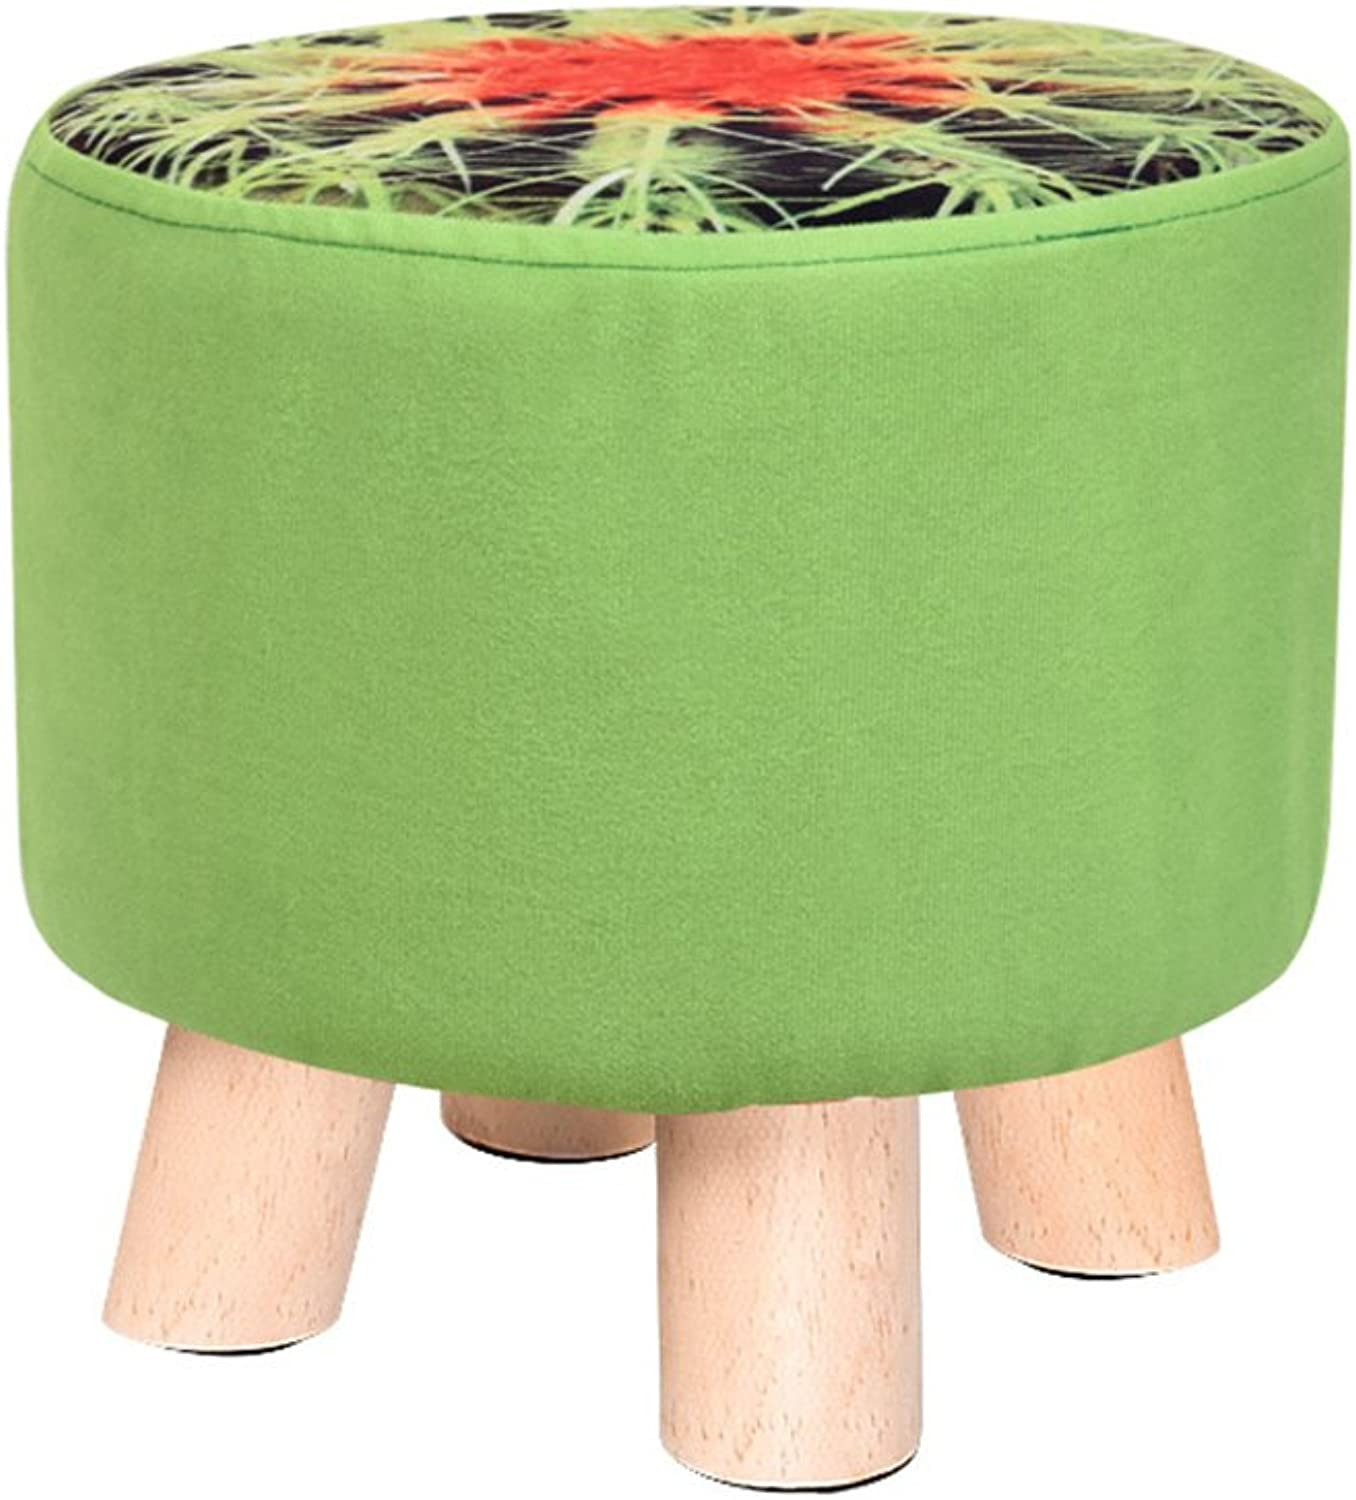 Living room sofa stool   Solid wood shoes bench Fabric fruit stool  Home coffee table stool Multifunctional footstool  Bed stool Solid wood stools  Creative shoe bench   Stool 2928cm -by TIANTA ( color   G )